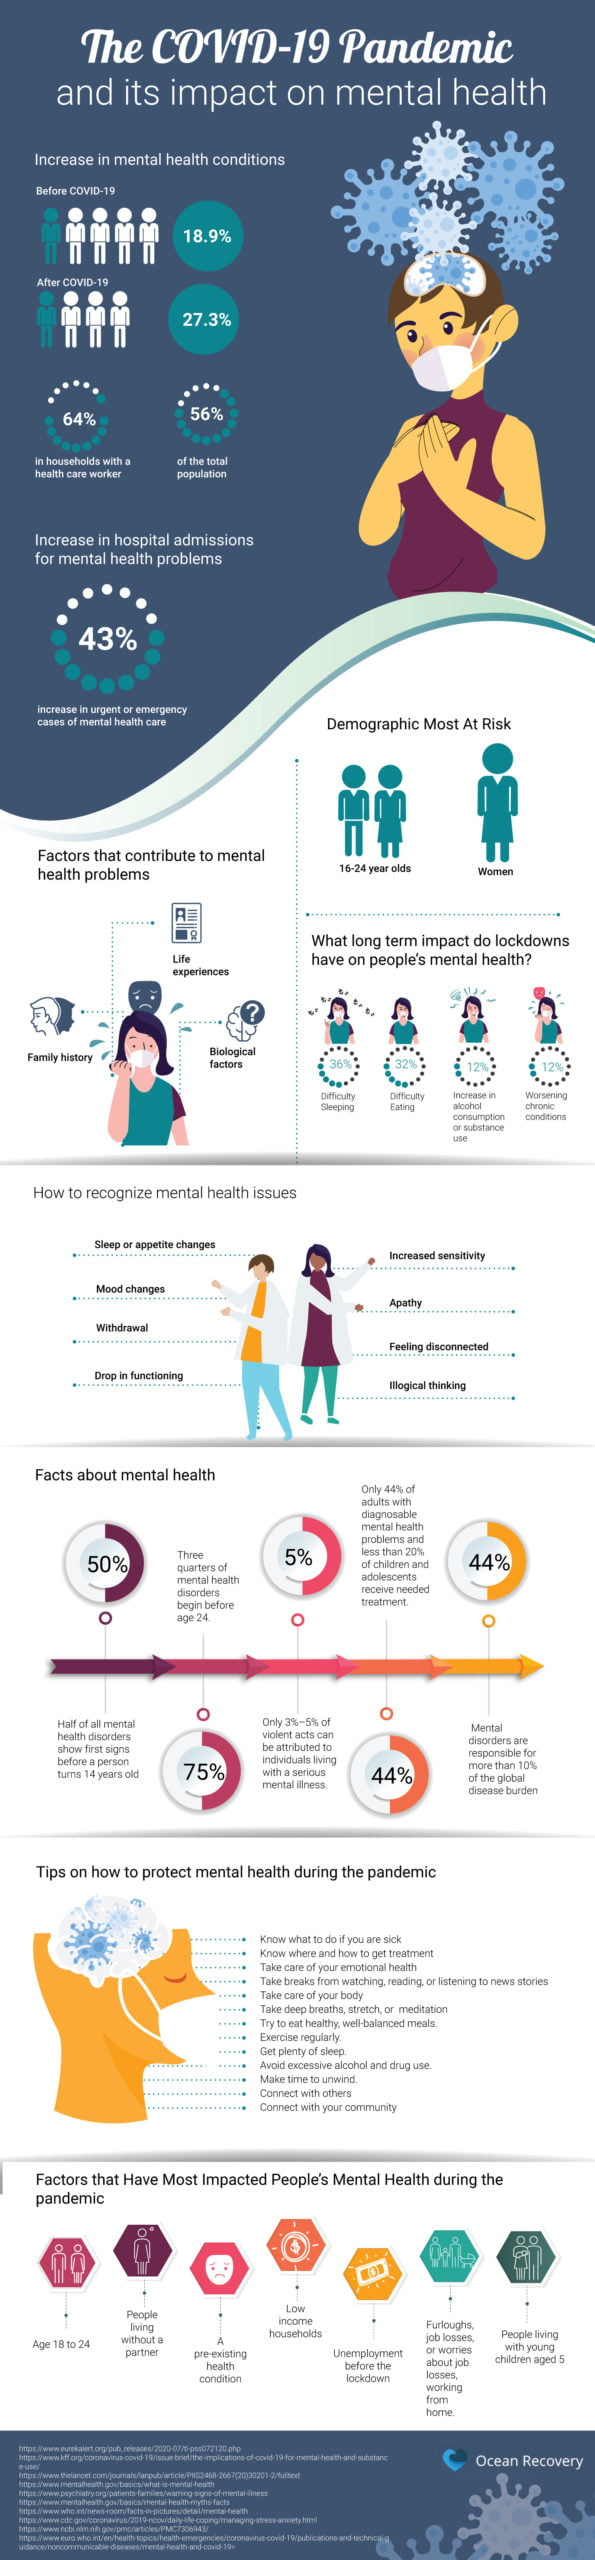 The COVID-19 pandemic and its impact on mental health infographic